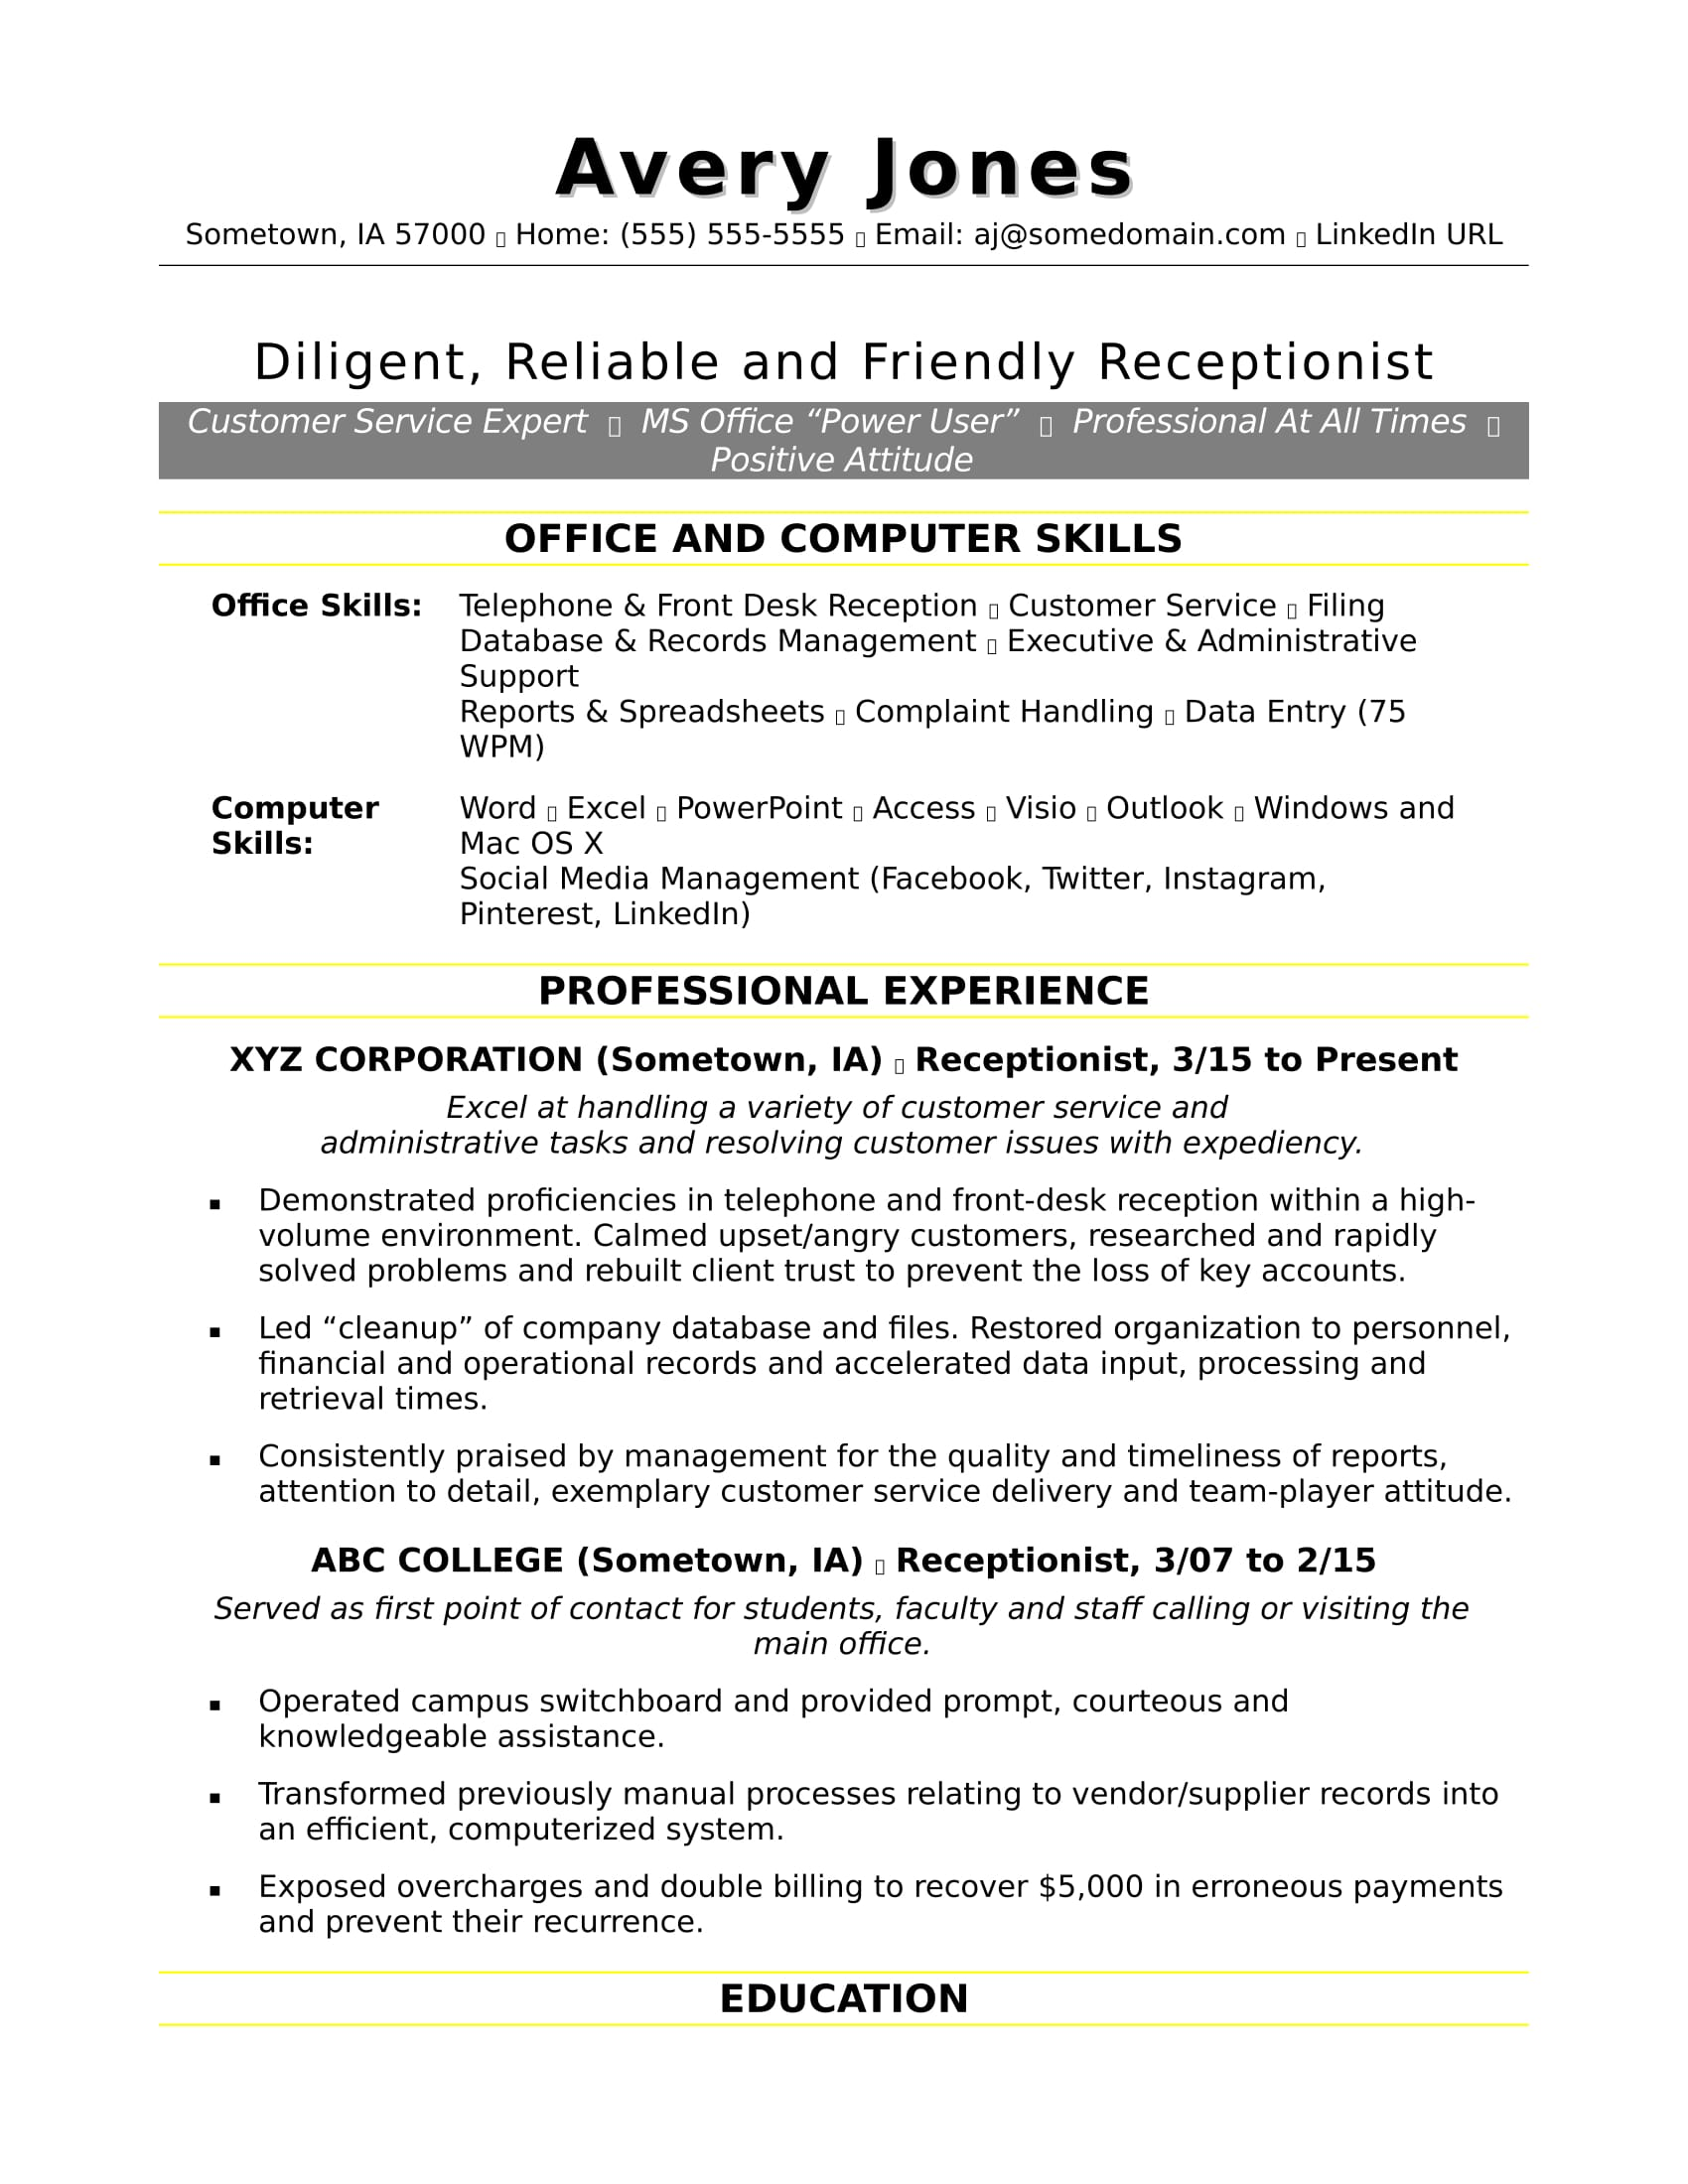 receptionist resume sample monster skills and abilities for email writing sending Resume Skills And Abilities For Receptionist Resume